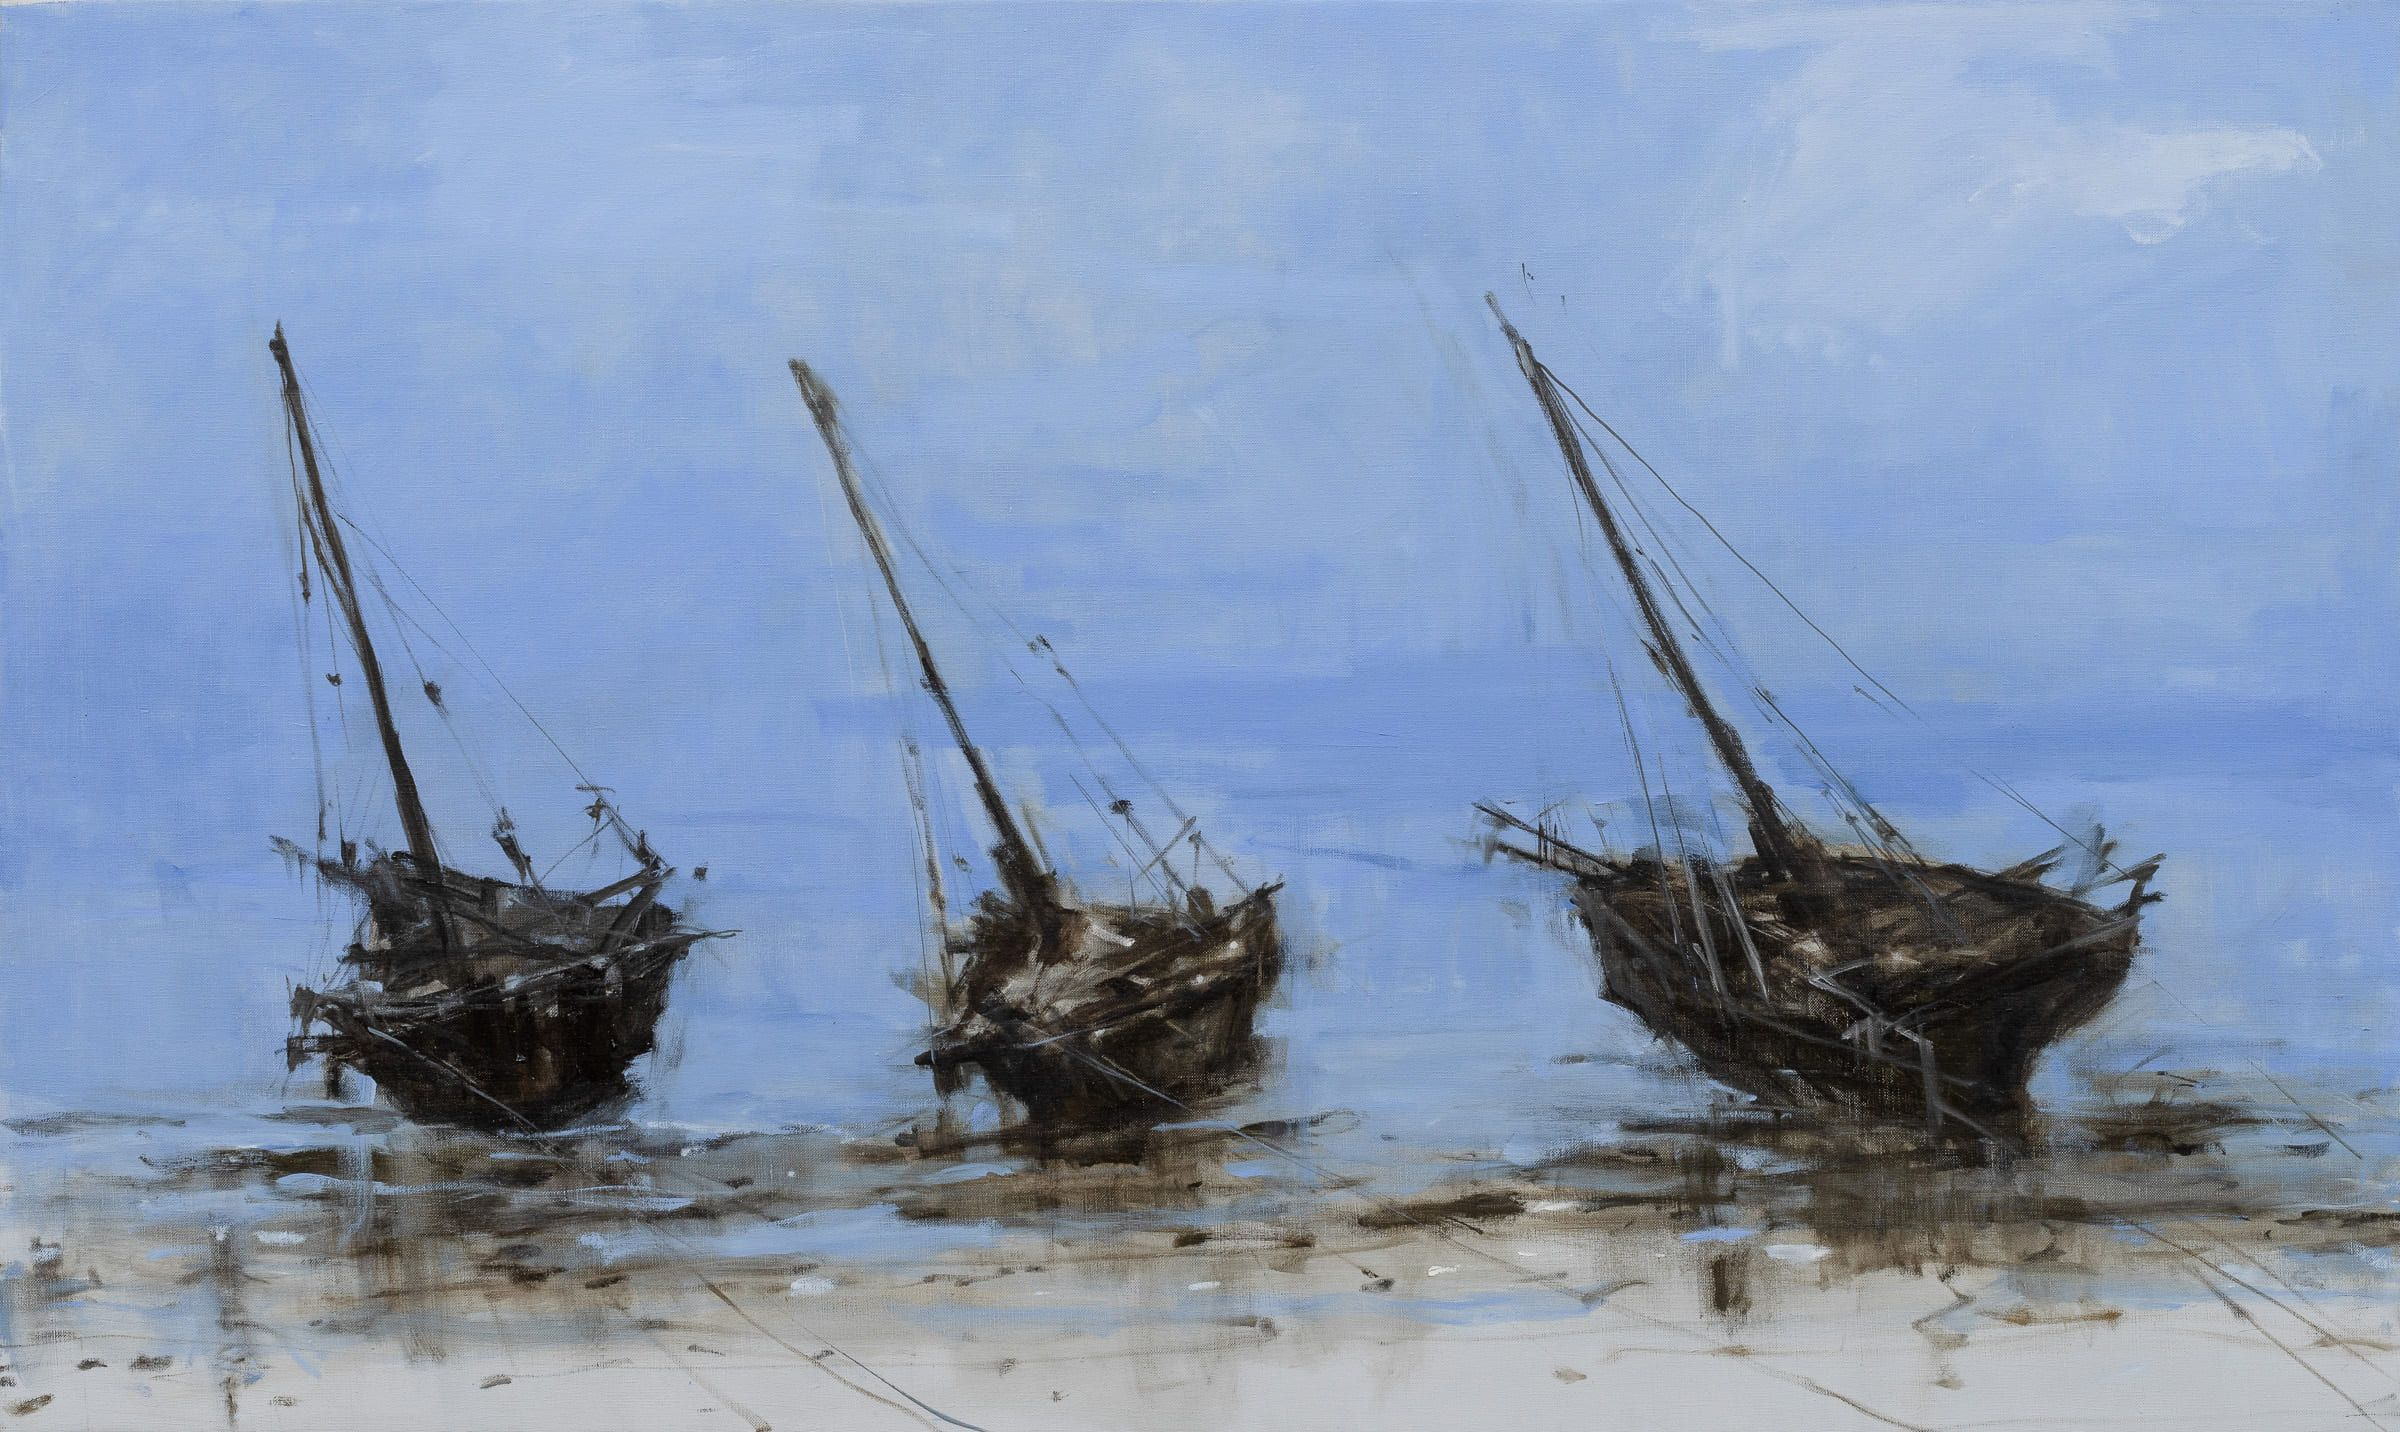 Coast of Bagamoyo n°3,Calo  Carratalá,Contemporary painting